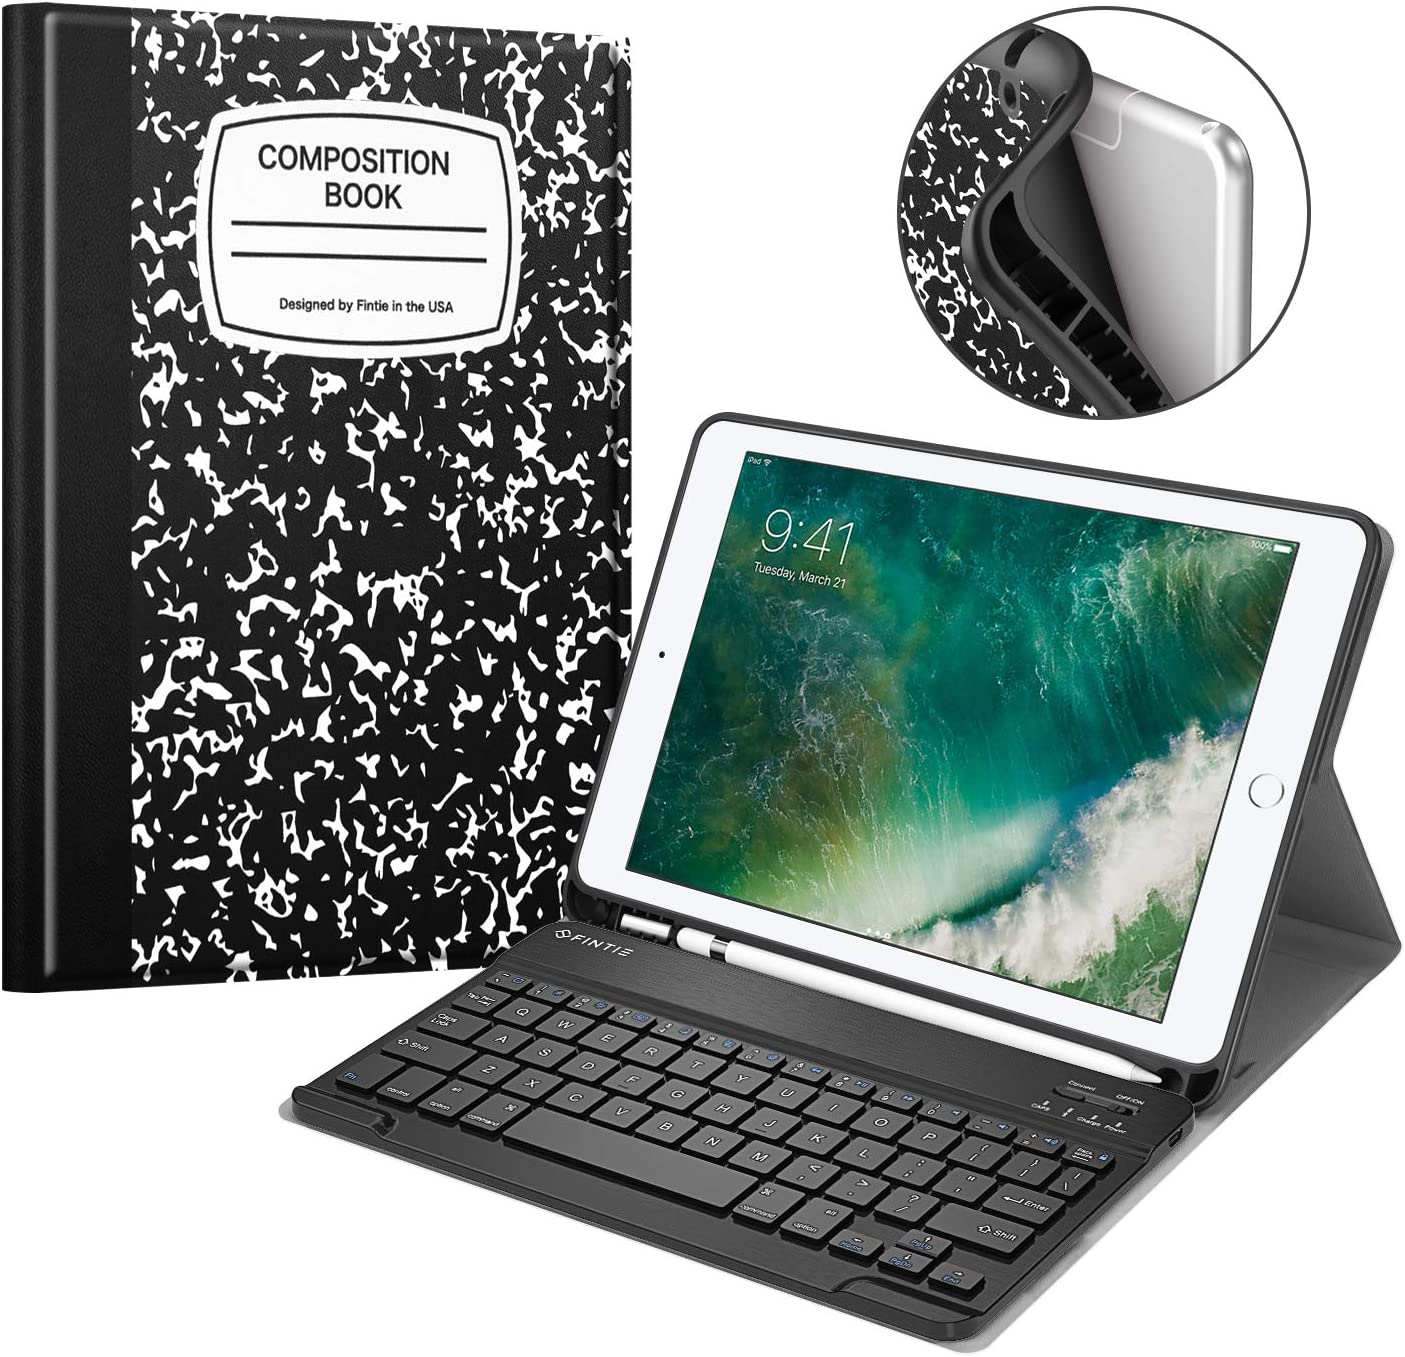 Fintie Keyboard Case for iPad 9.7 2018 with Built-in Pencil Holder, [SlimShell] Soft TPU Back Protective Cover w/Magnetically Detachable Wireless Bluetooth Keyboard, Composition Book Black